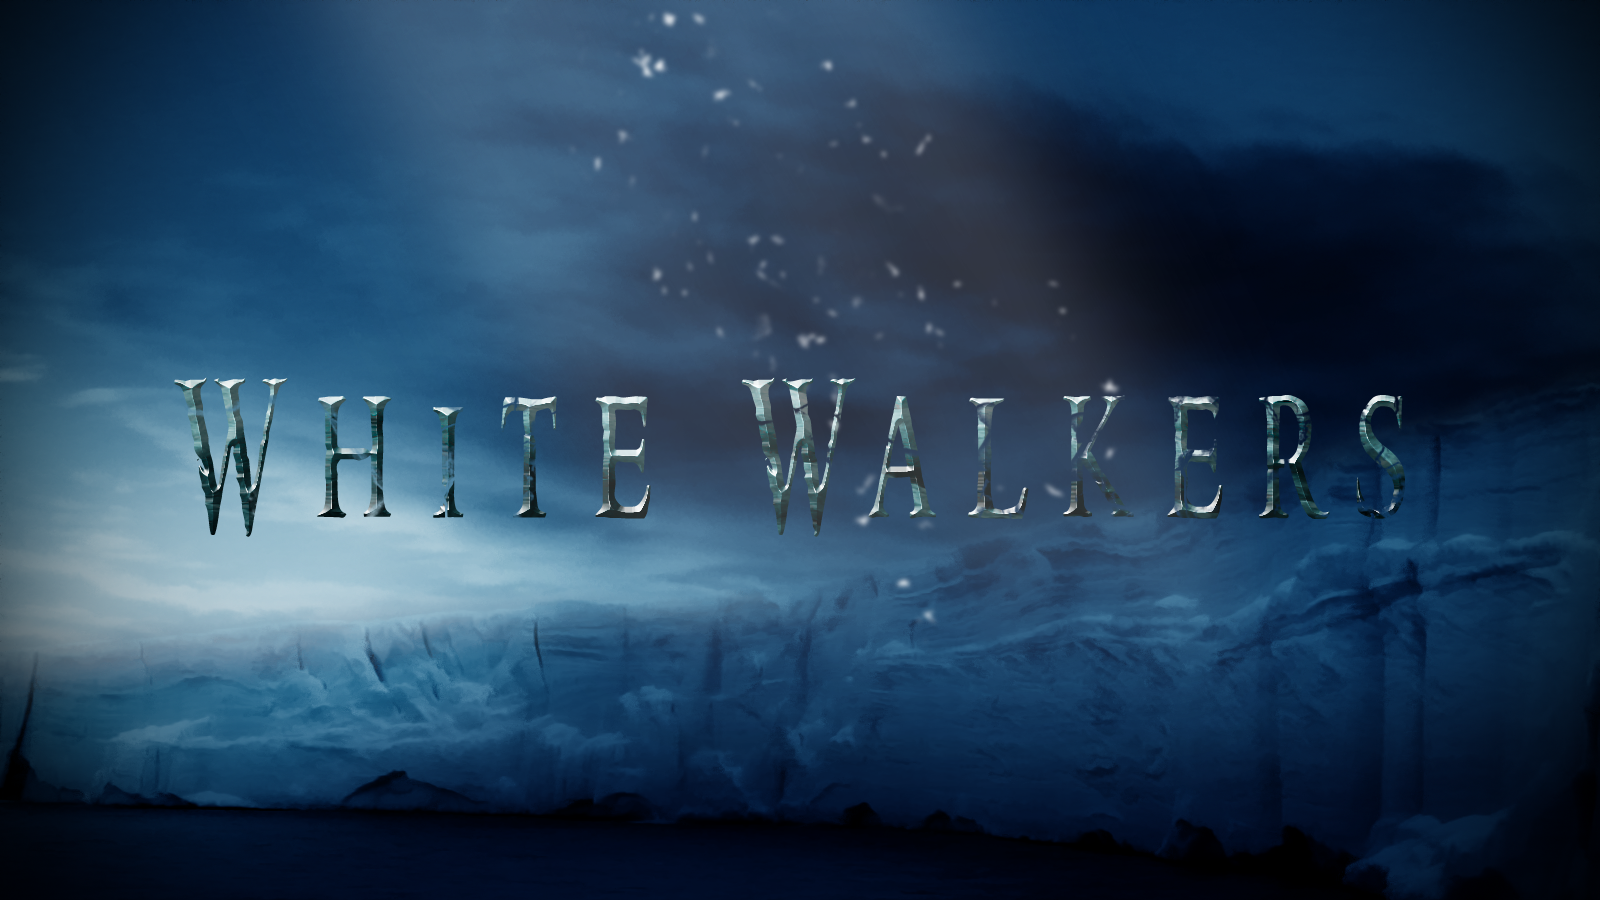 Free Download White Walkers Wallpaper By Saracennegative 1600x900